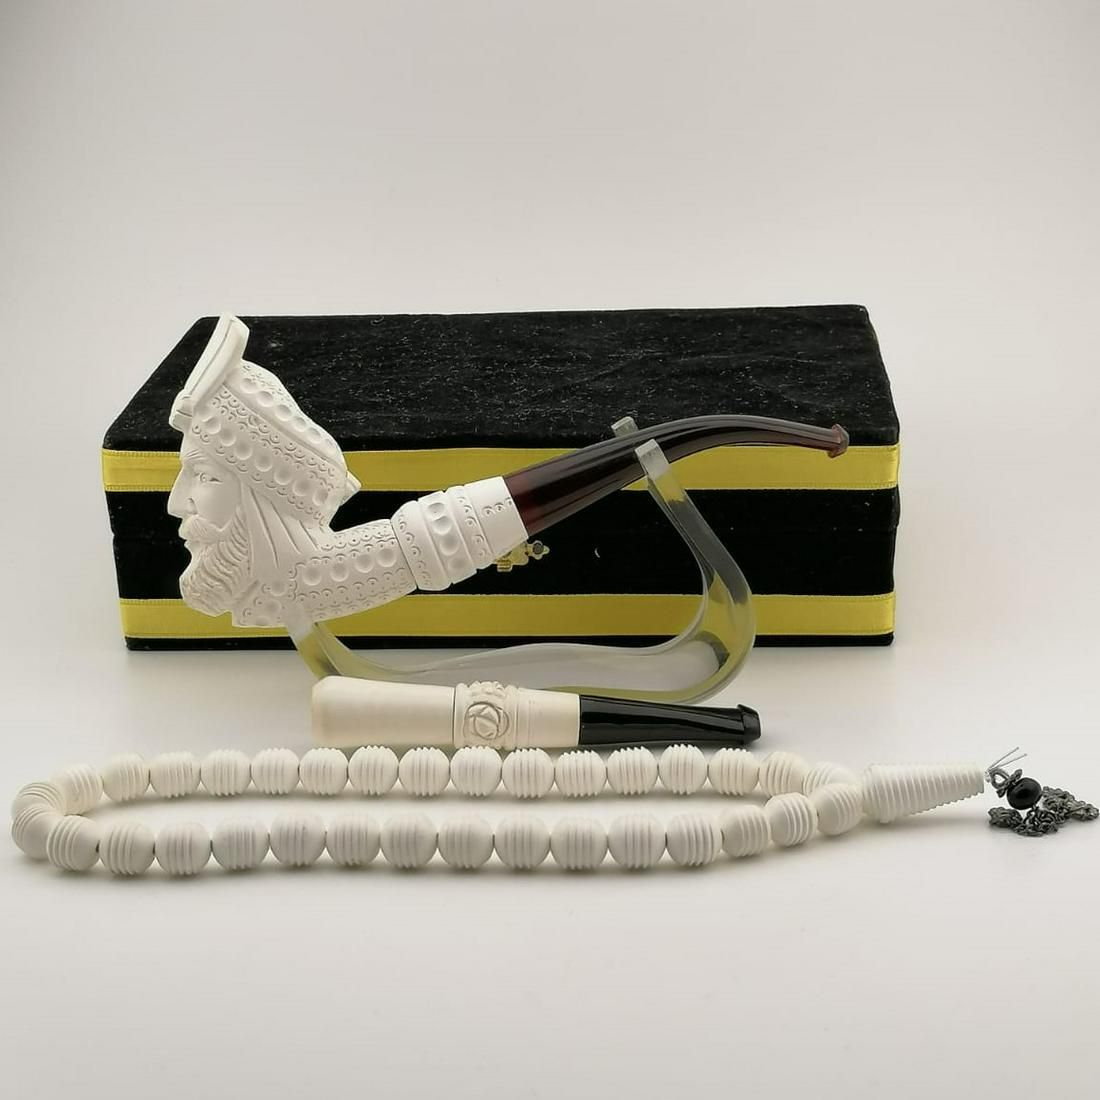 Sultan (King),Hand carved Meerschaum Pipe with Rosary